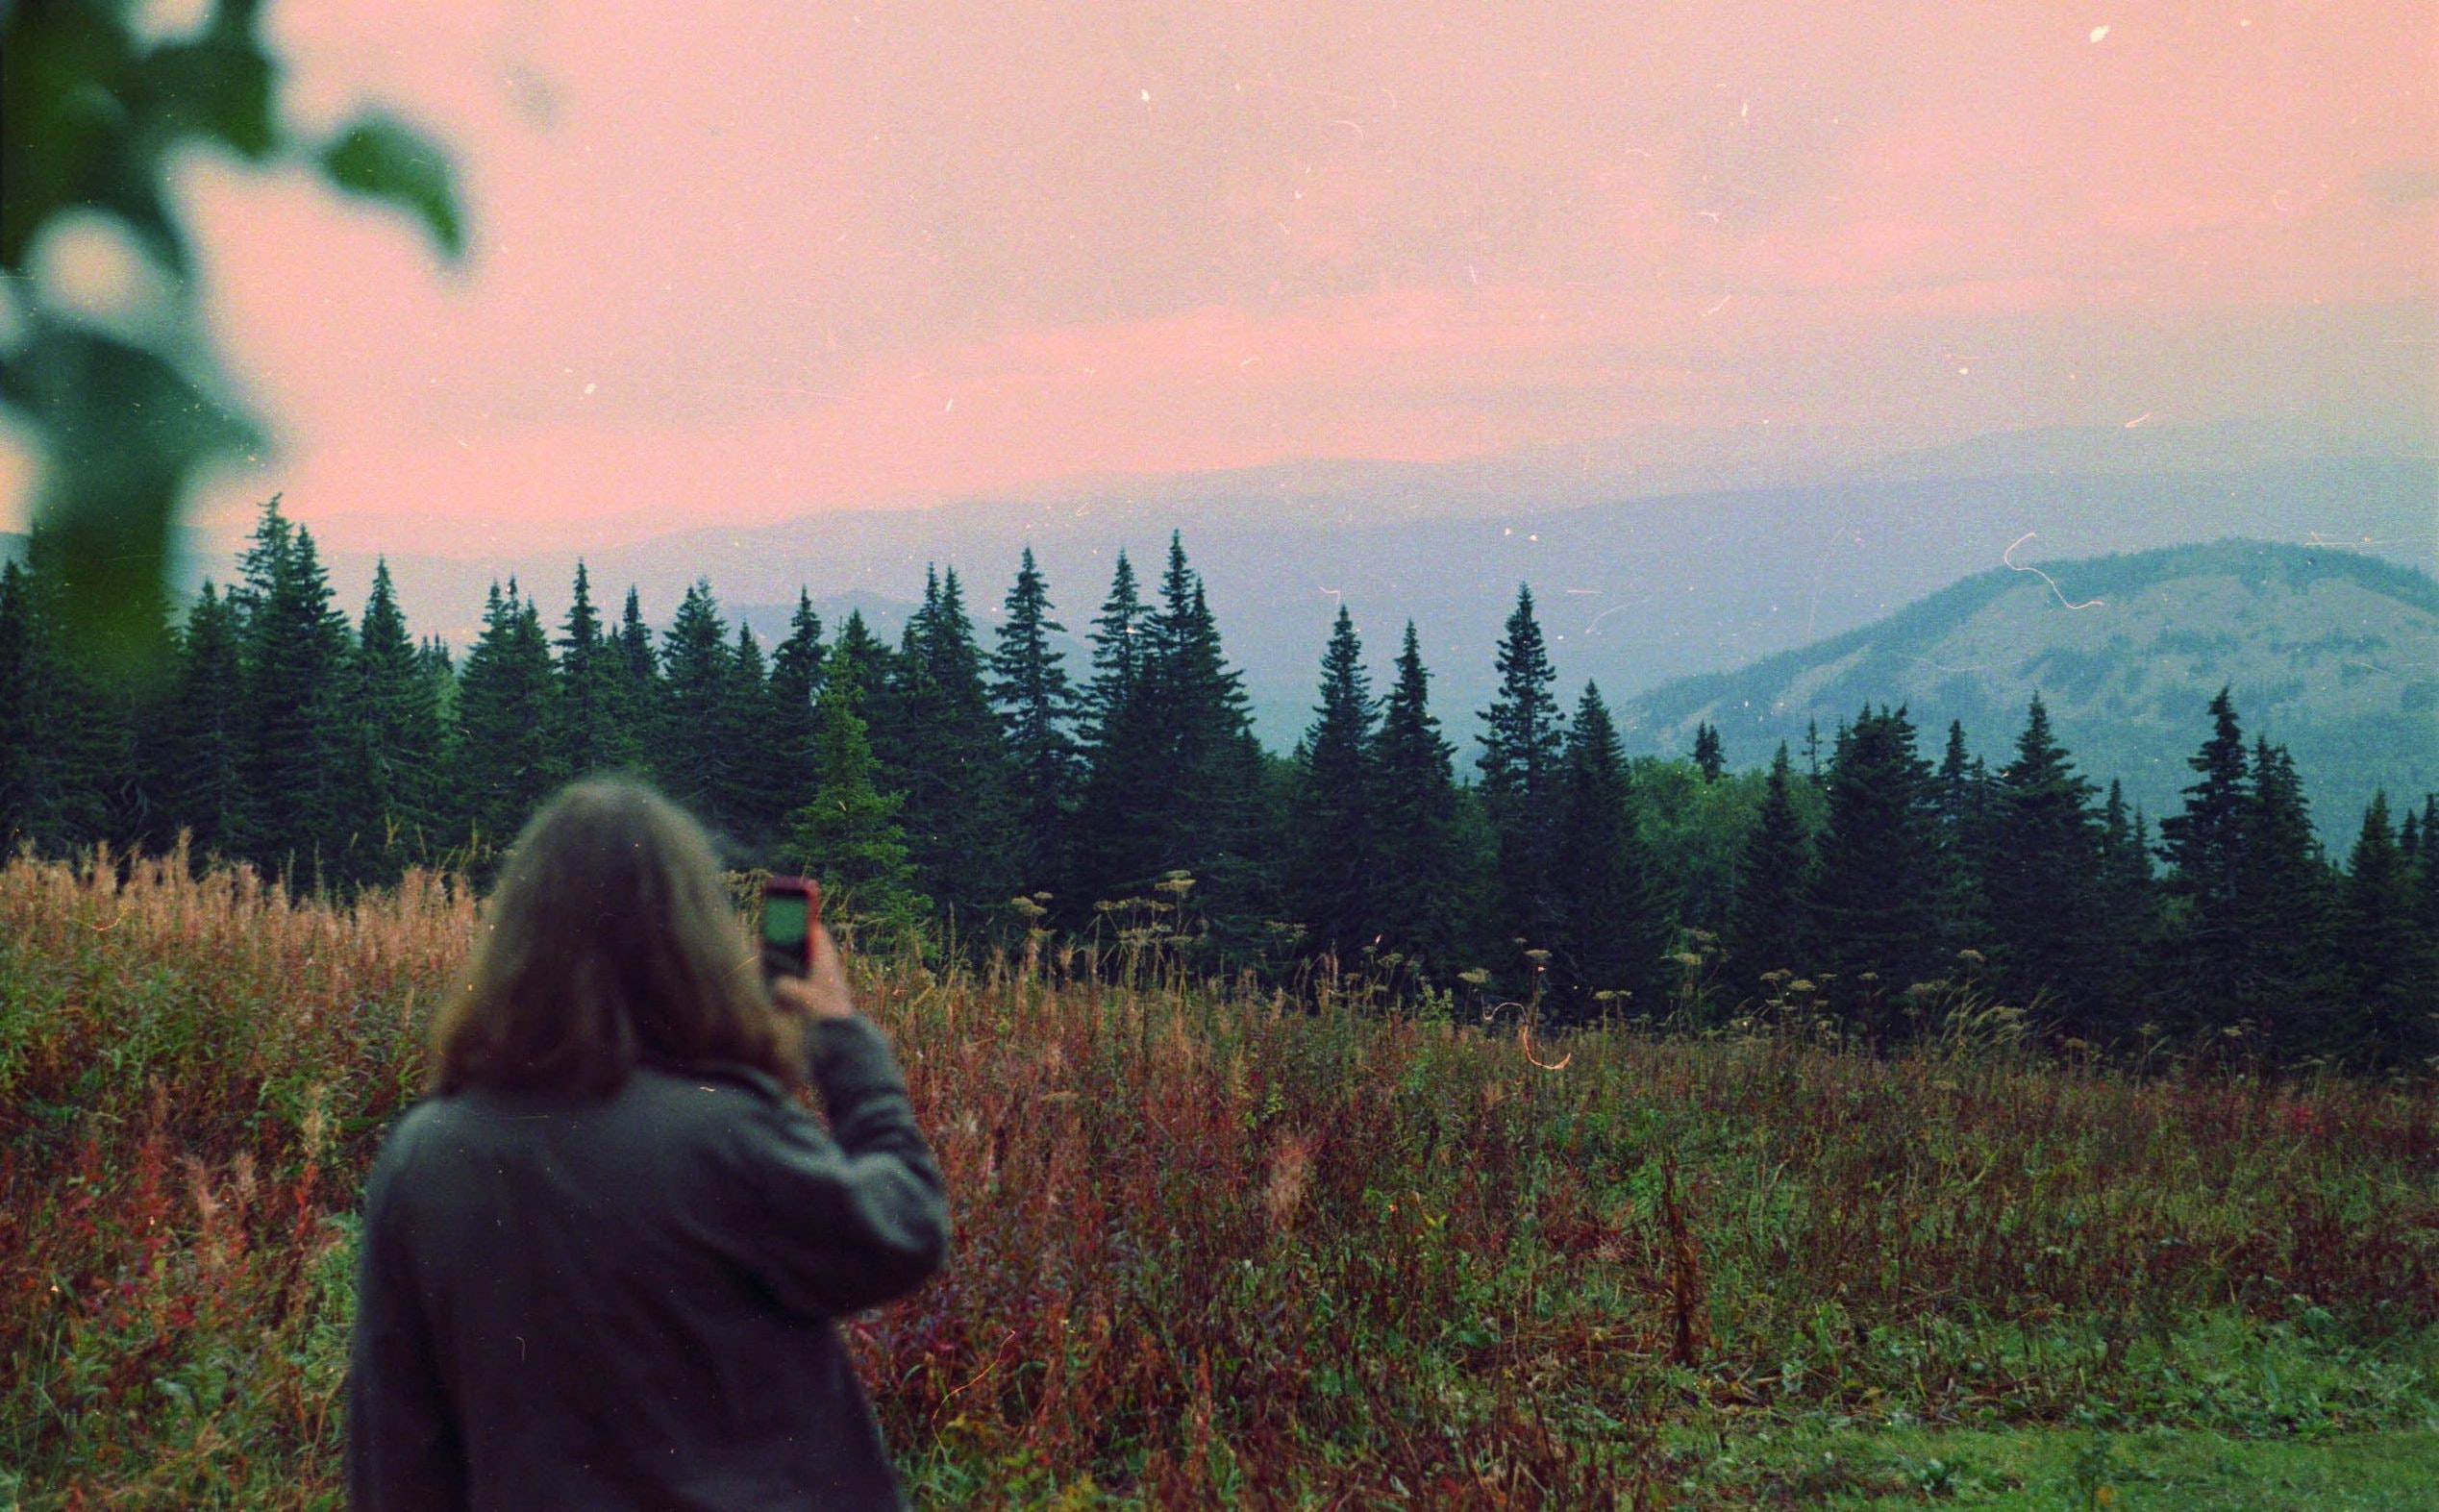 A woman taking a photo of a forest with her phone